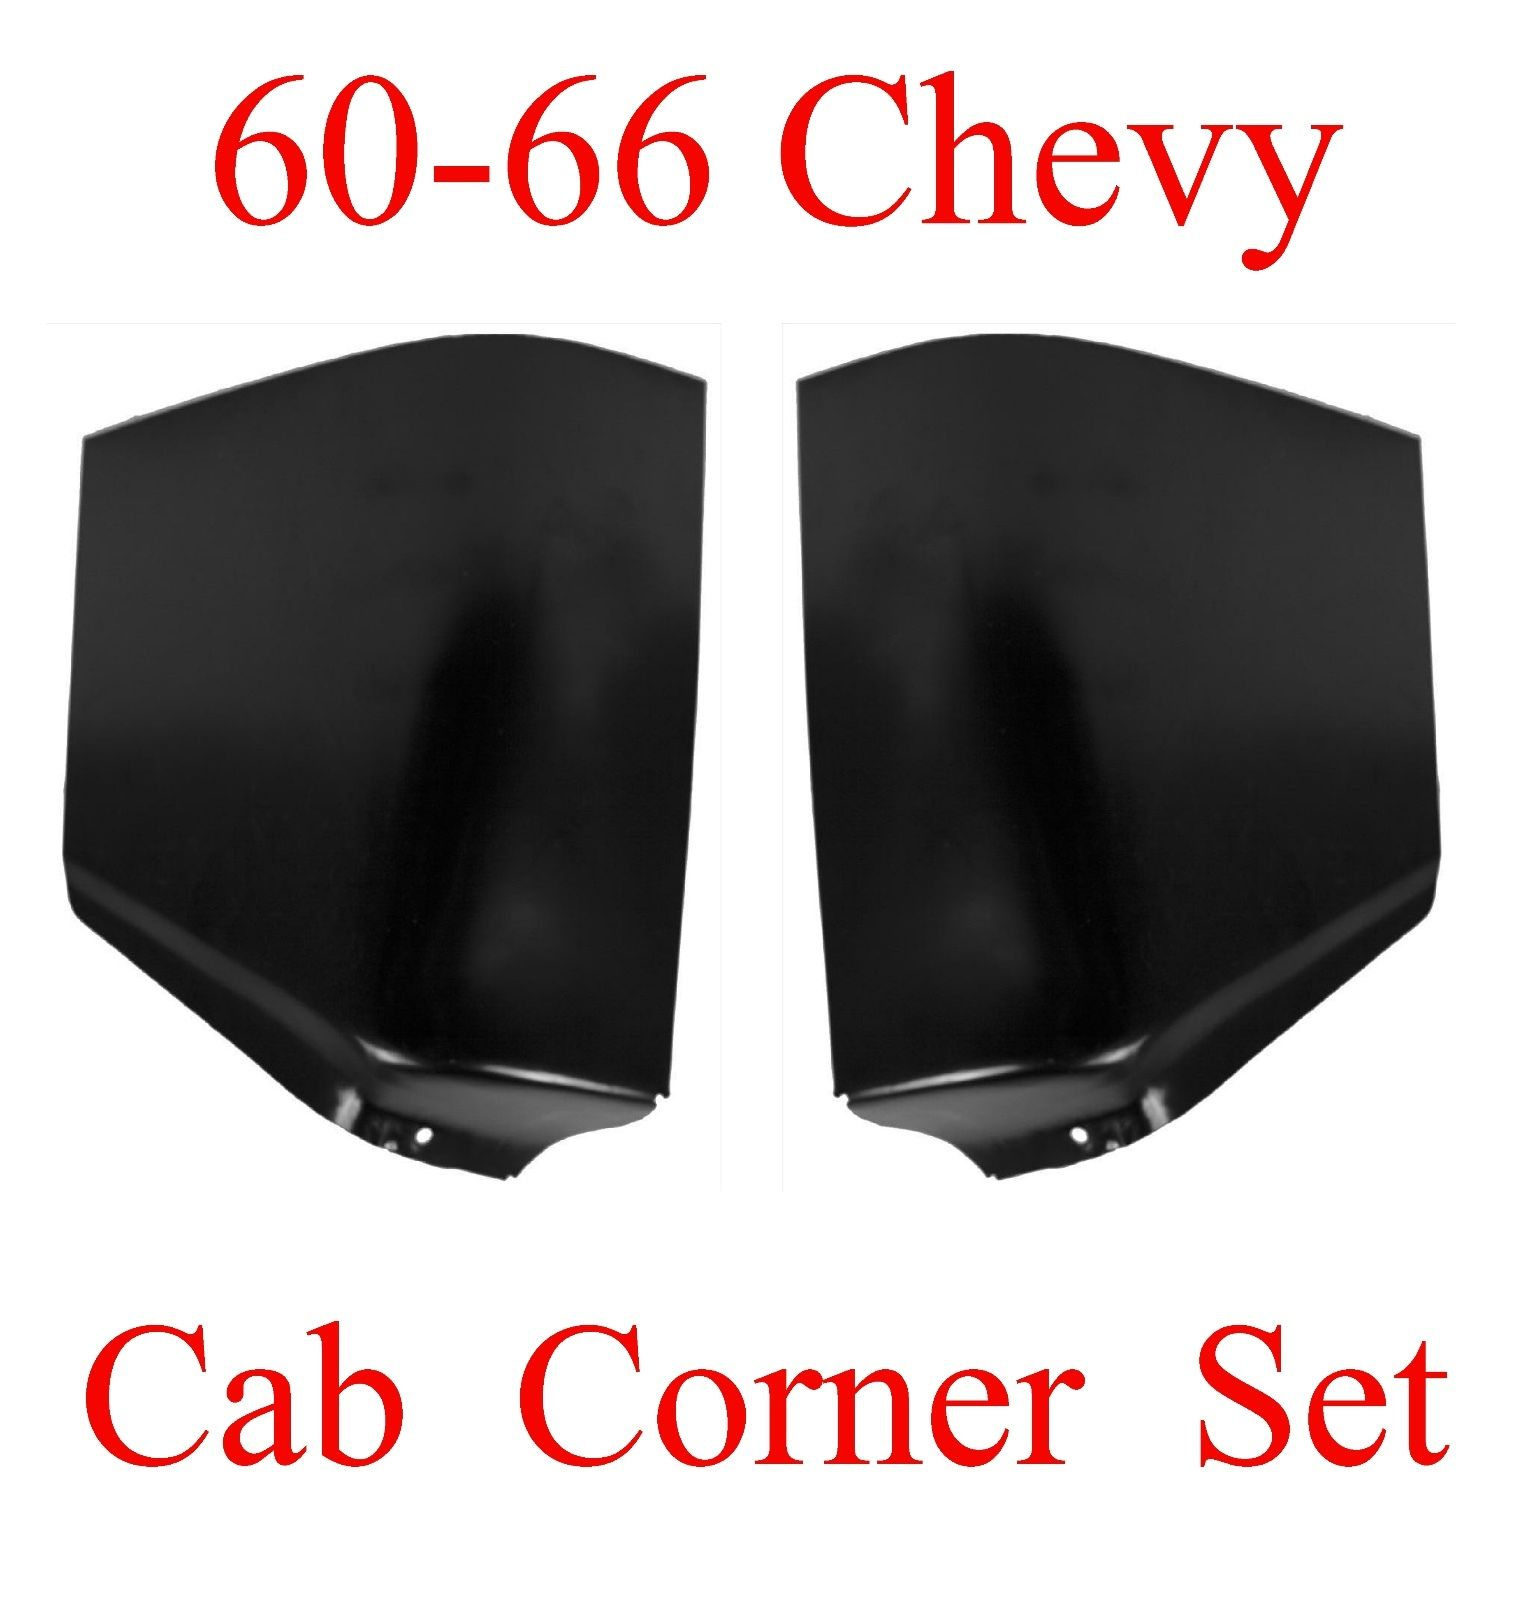 60 66 Chevy GMC Cab Corner Set